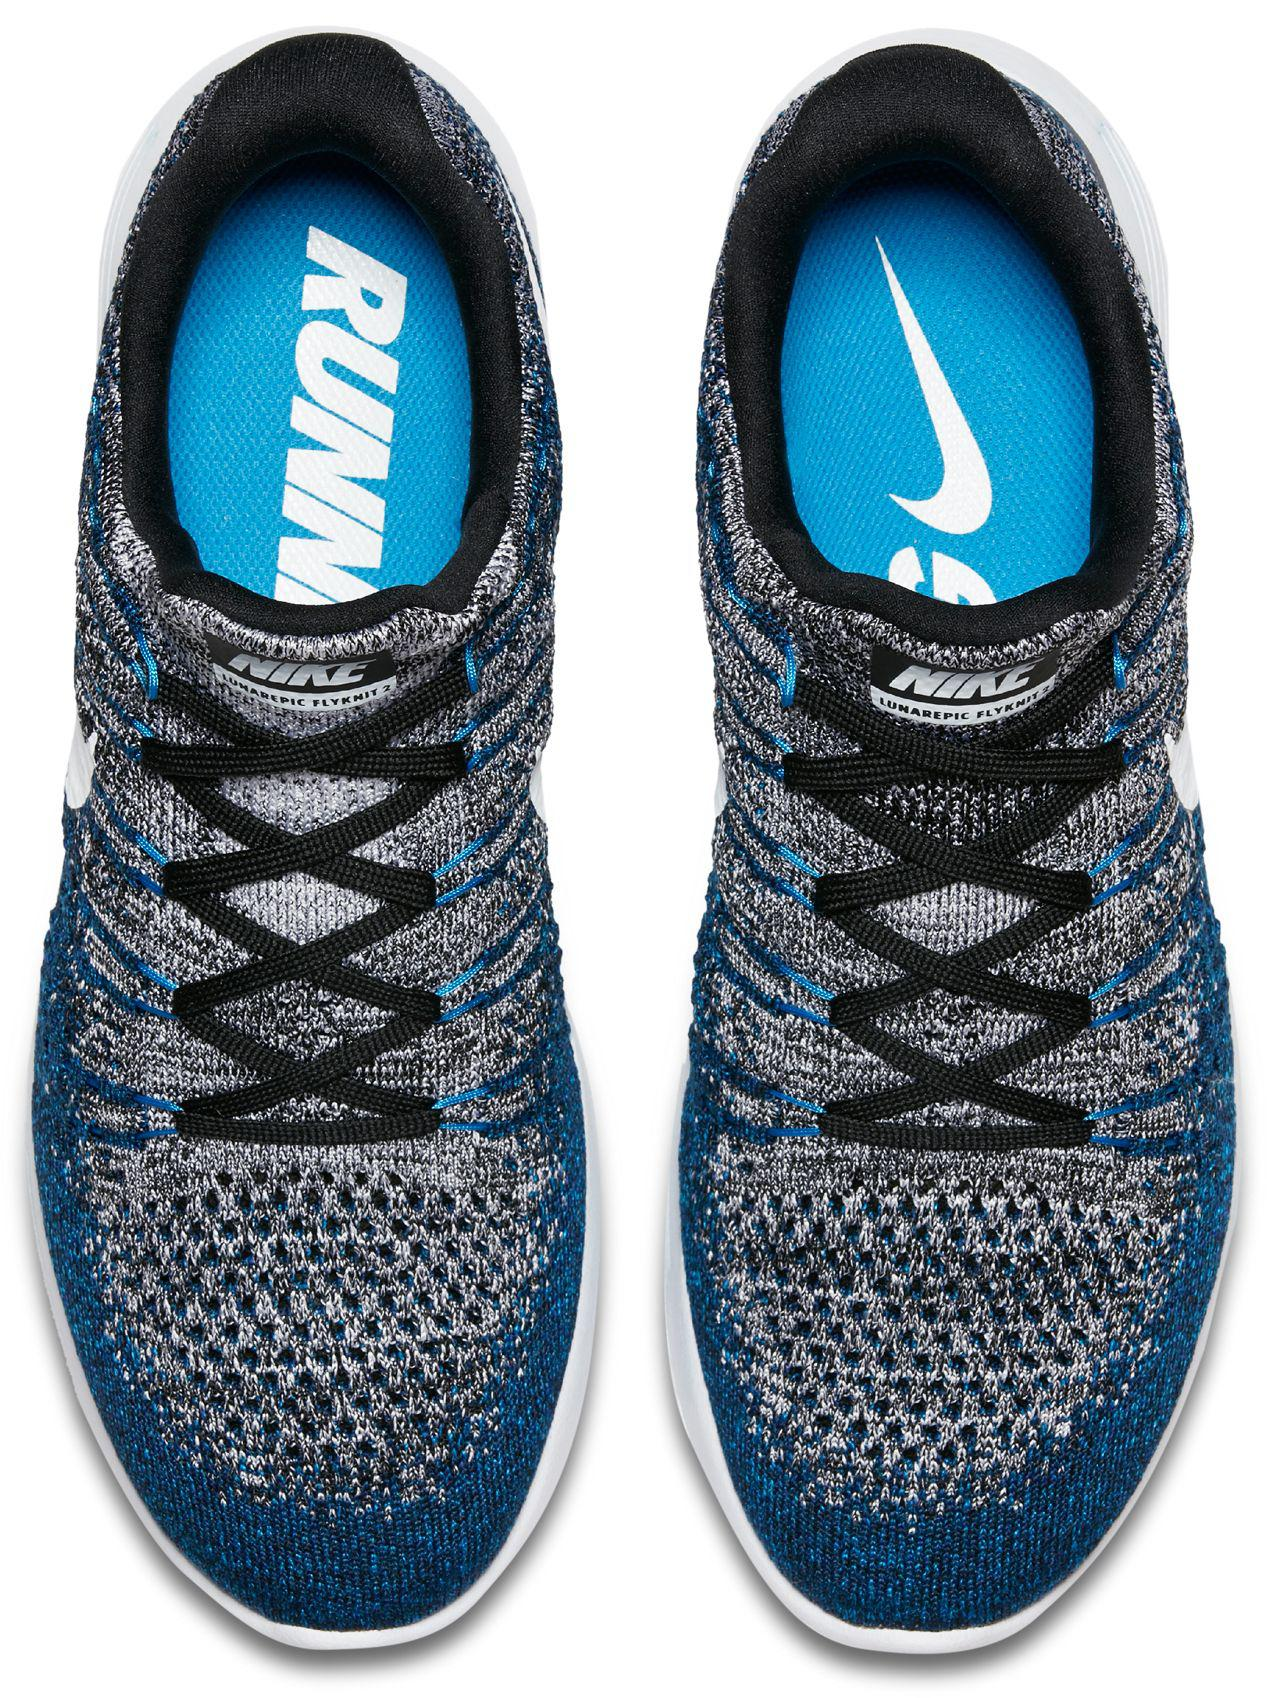 303058450c4ad Lyst - Nike Lunarepic Low Flyknit 2 Running Shoes in Blue for Men